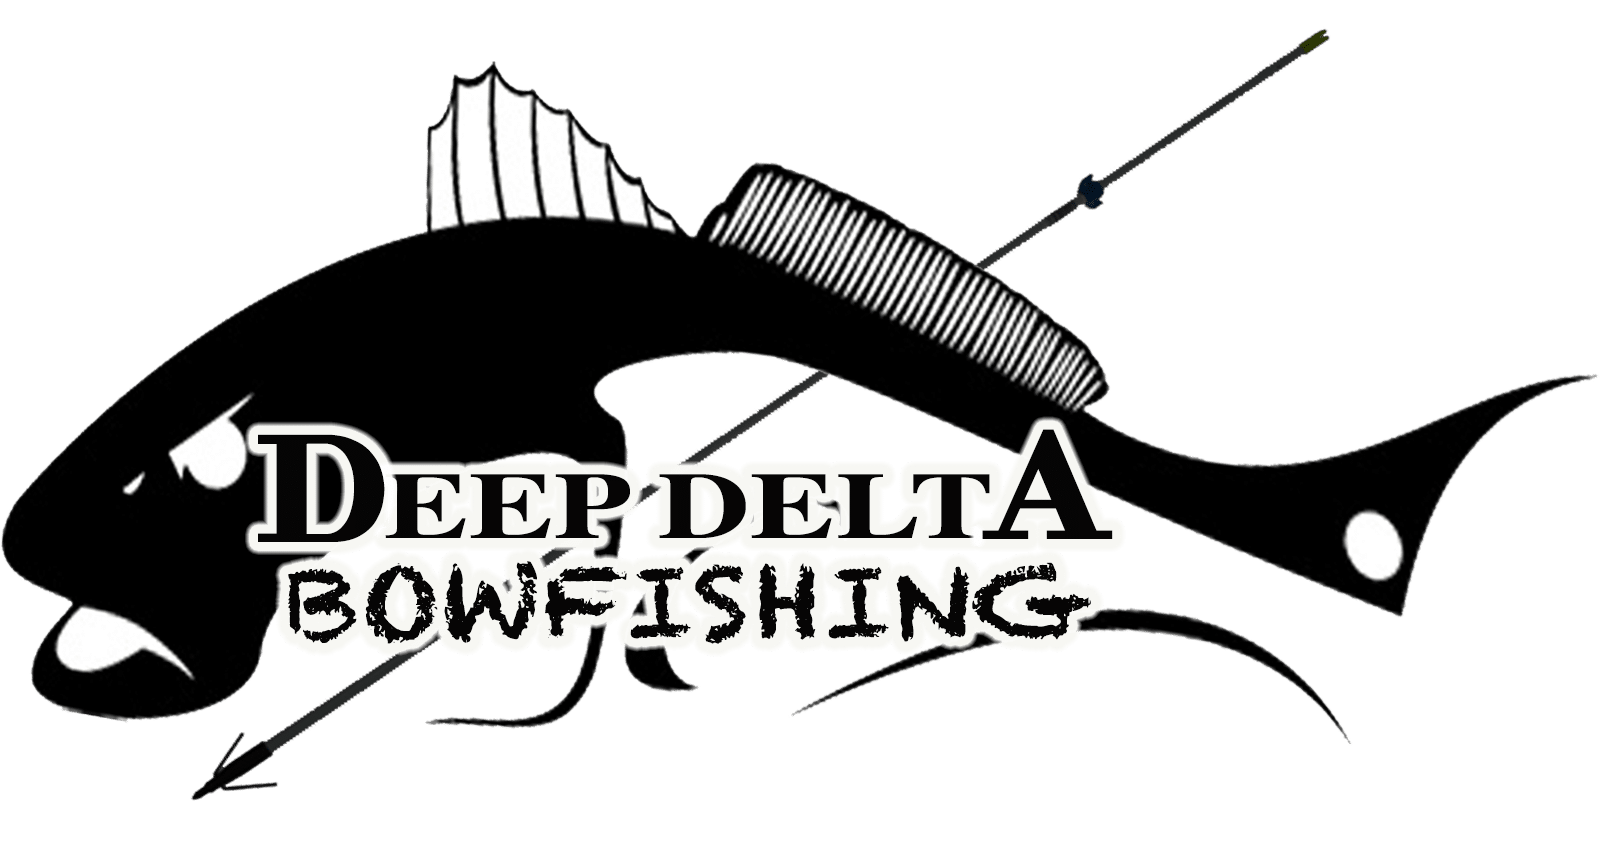 Bowfishing packages from Deep Delta Bowfishing.